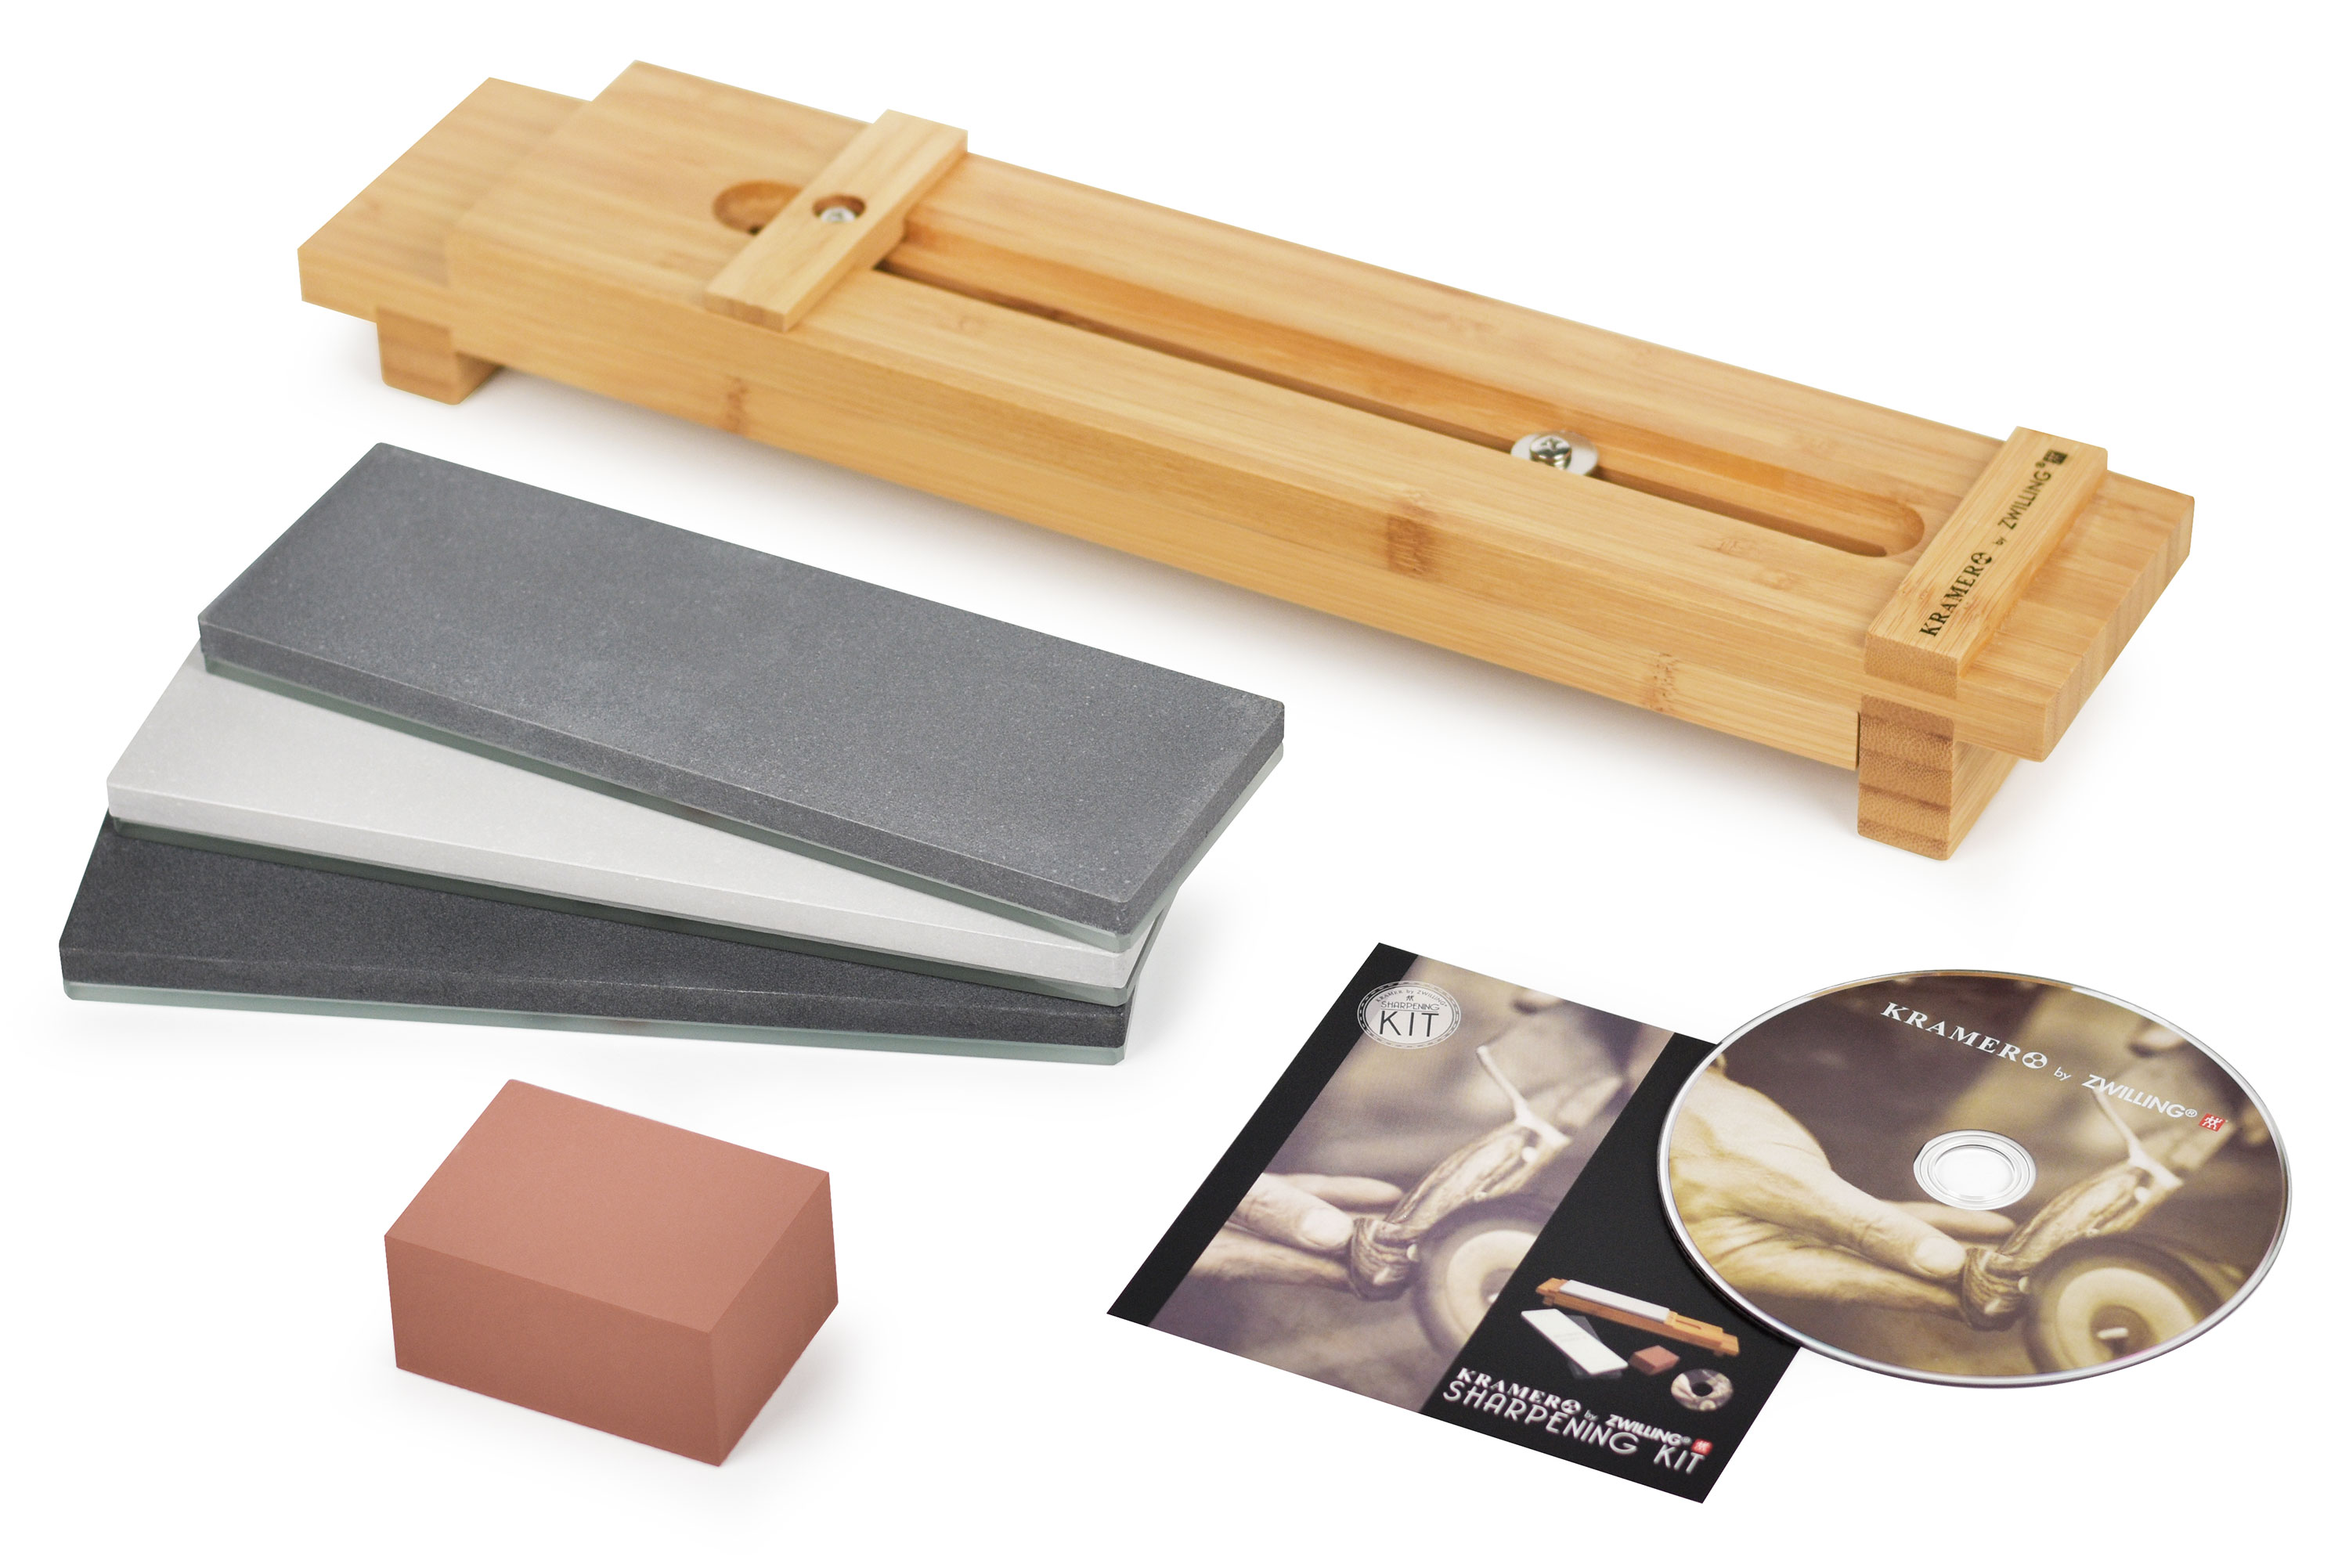 Water Sharpening Stones : Bob kramer sharpening stones kit by zwilling cutlery and